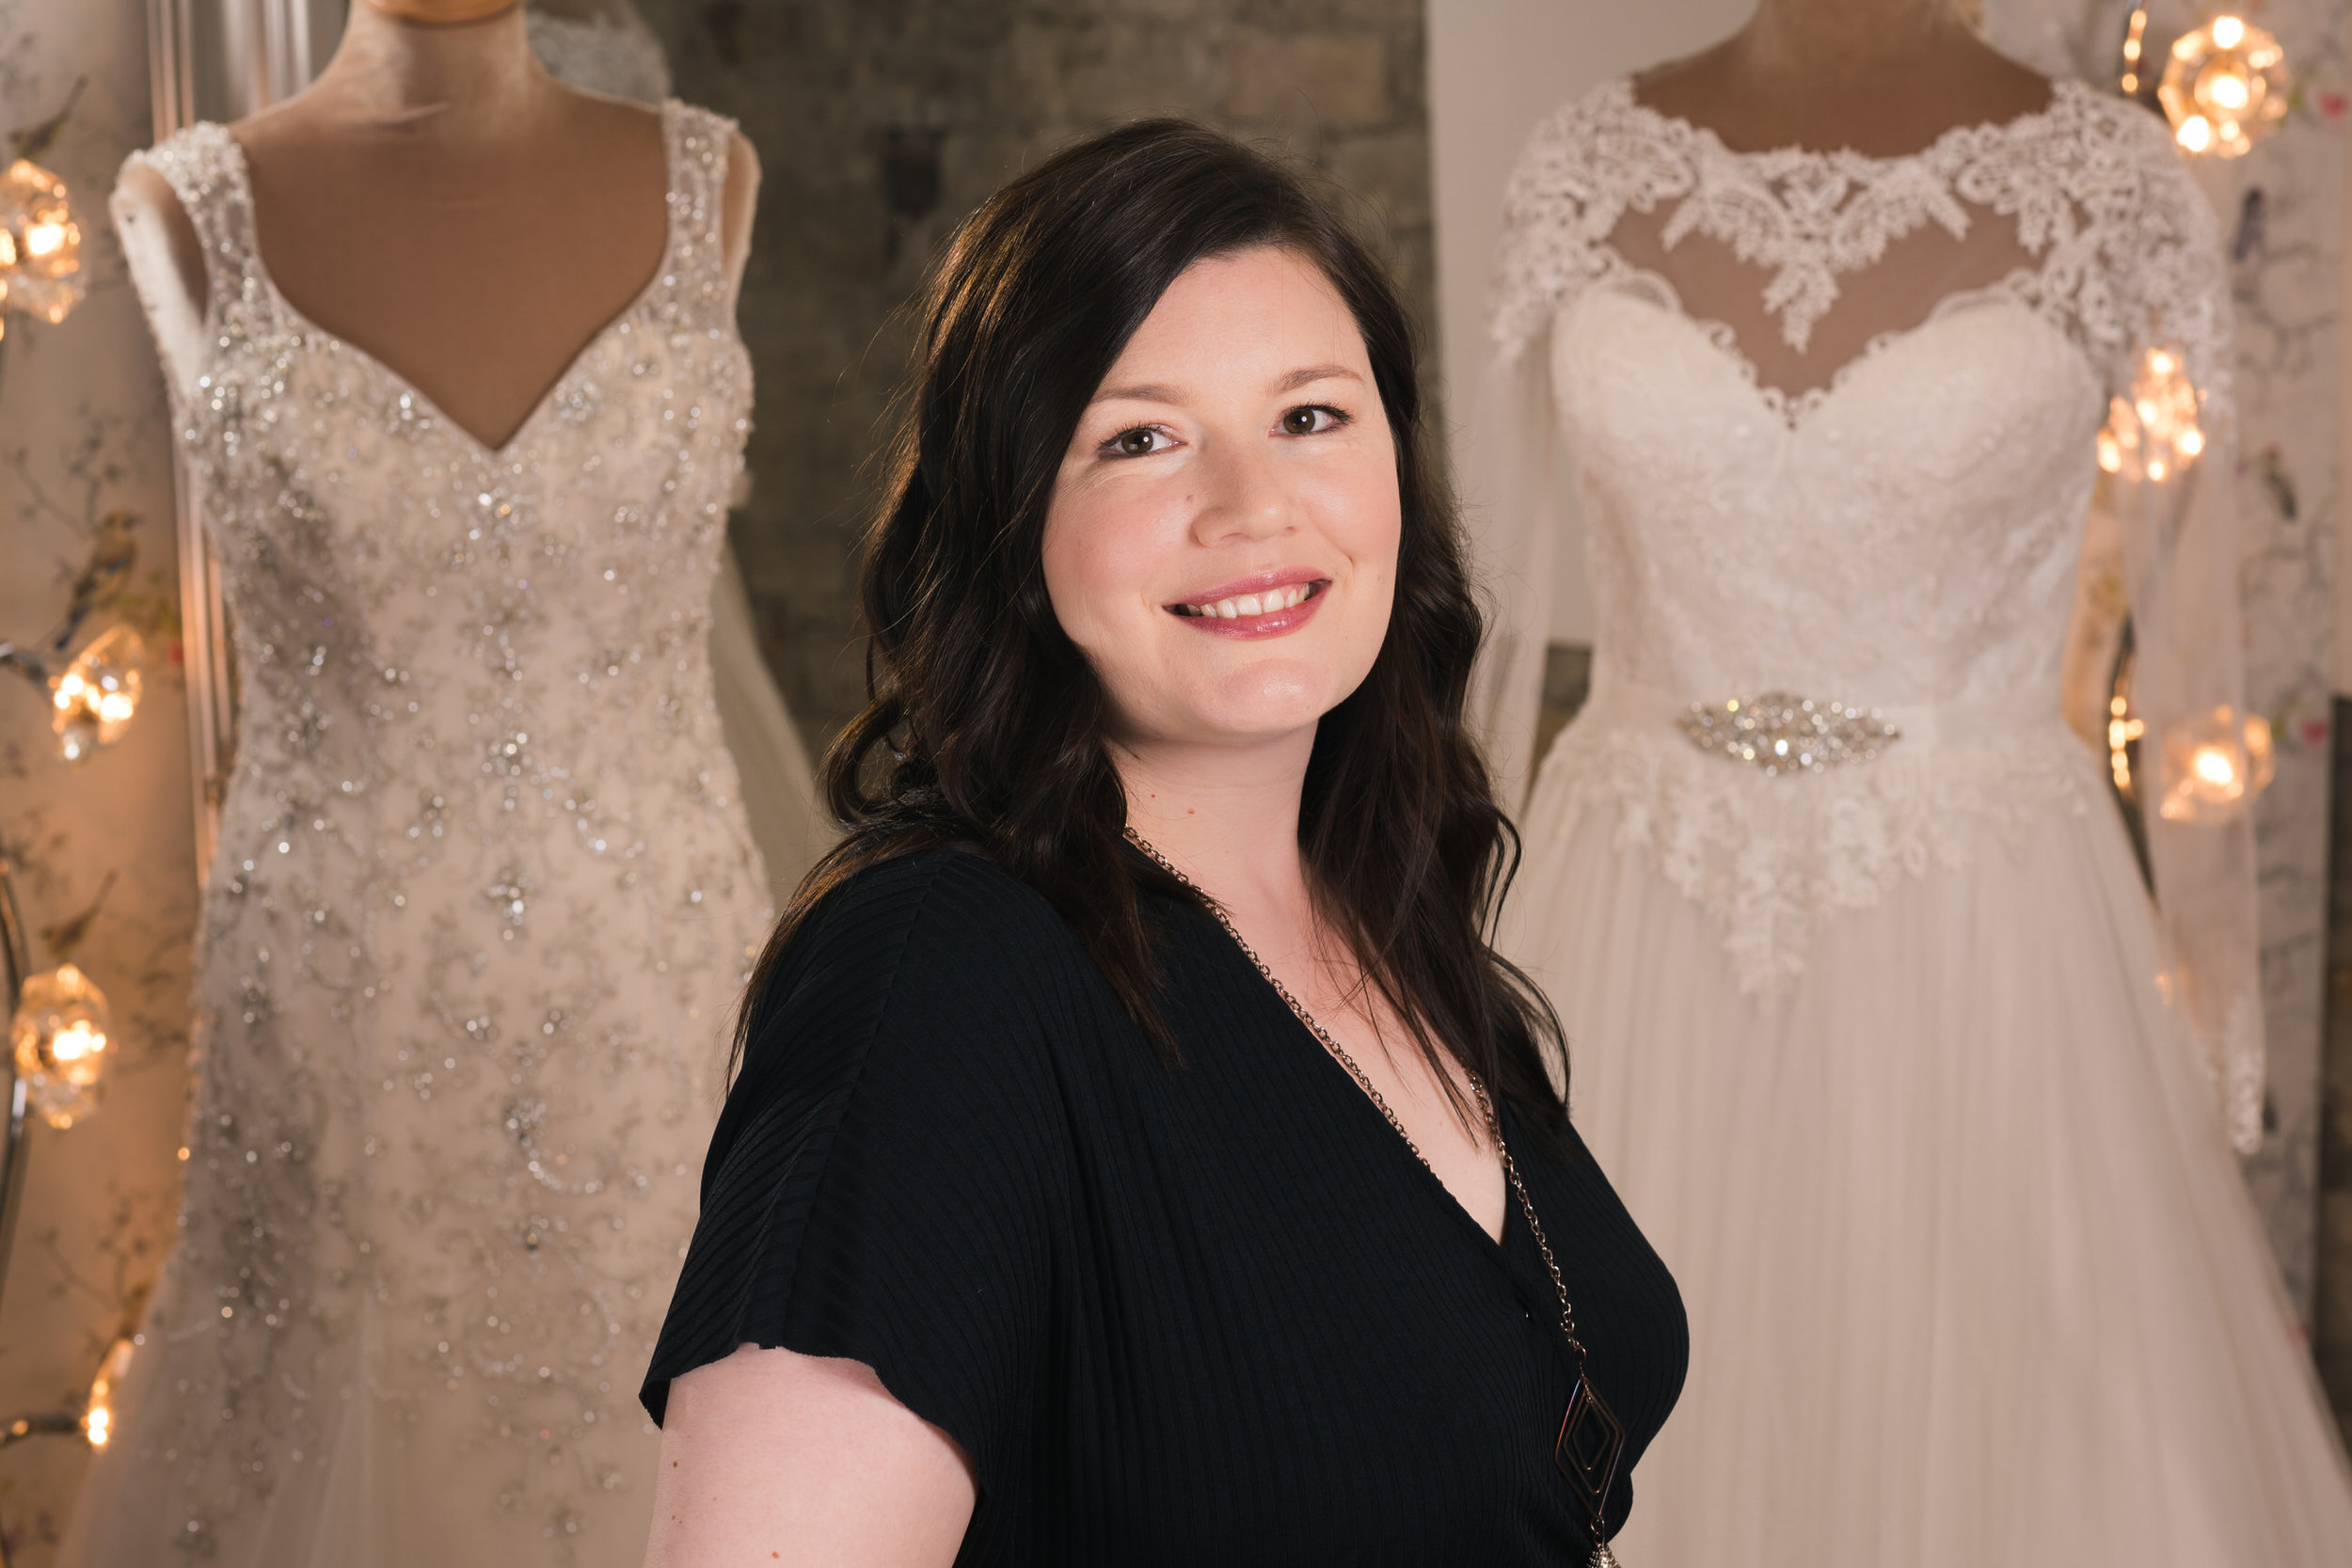 Picture of Louise at her bridal shop, Louise Perry Bridal.  Showing wedding dresses in the background.